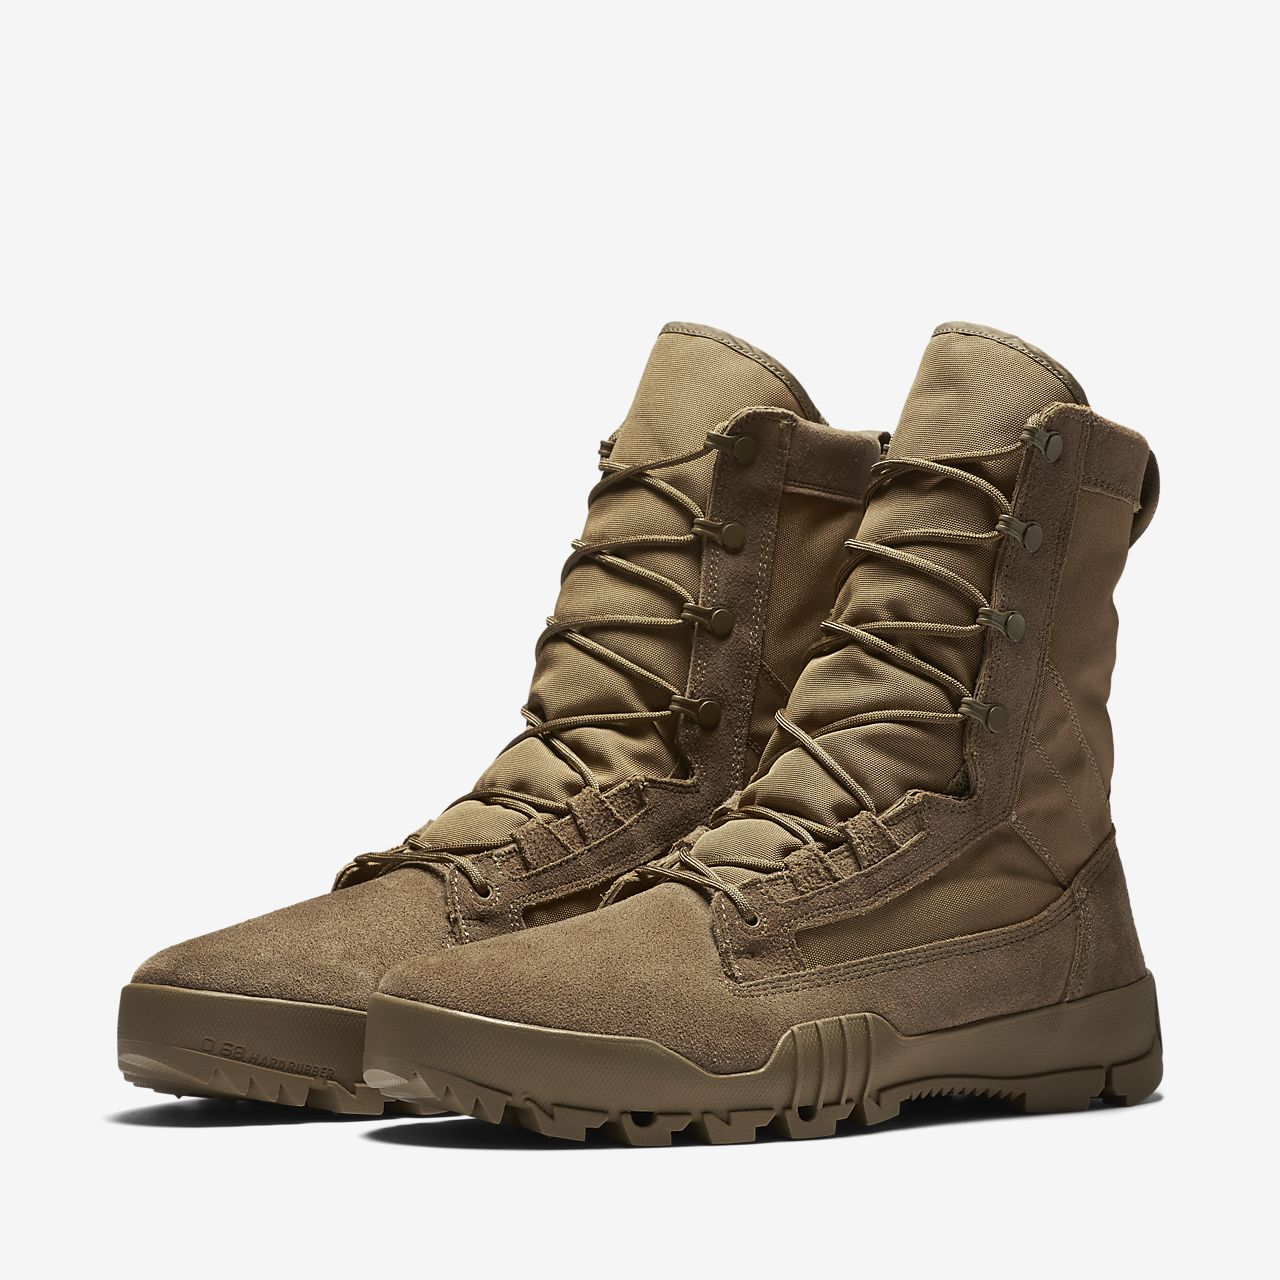 5b1fbf107654 ... Grade School Lifestyle Shoe Black White Gum Light Brown. Nike Jungle  Boots